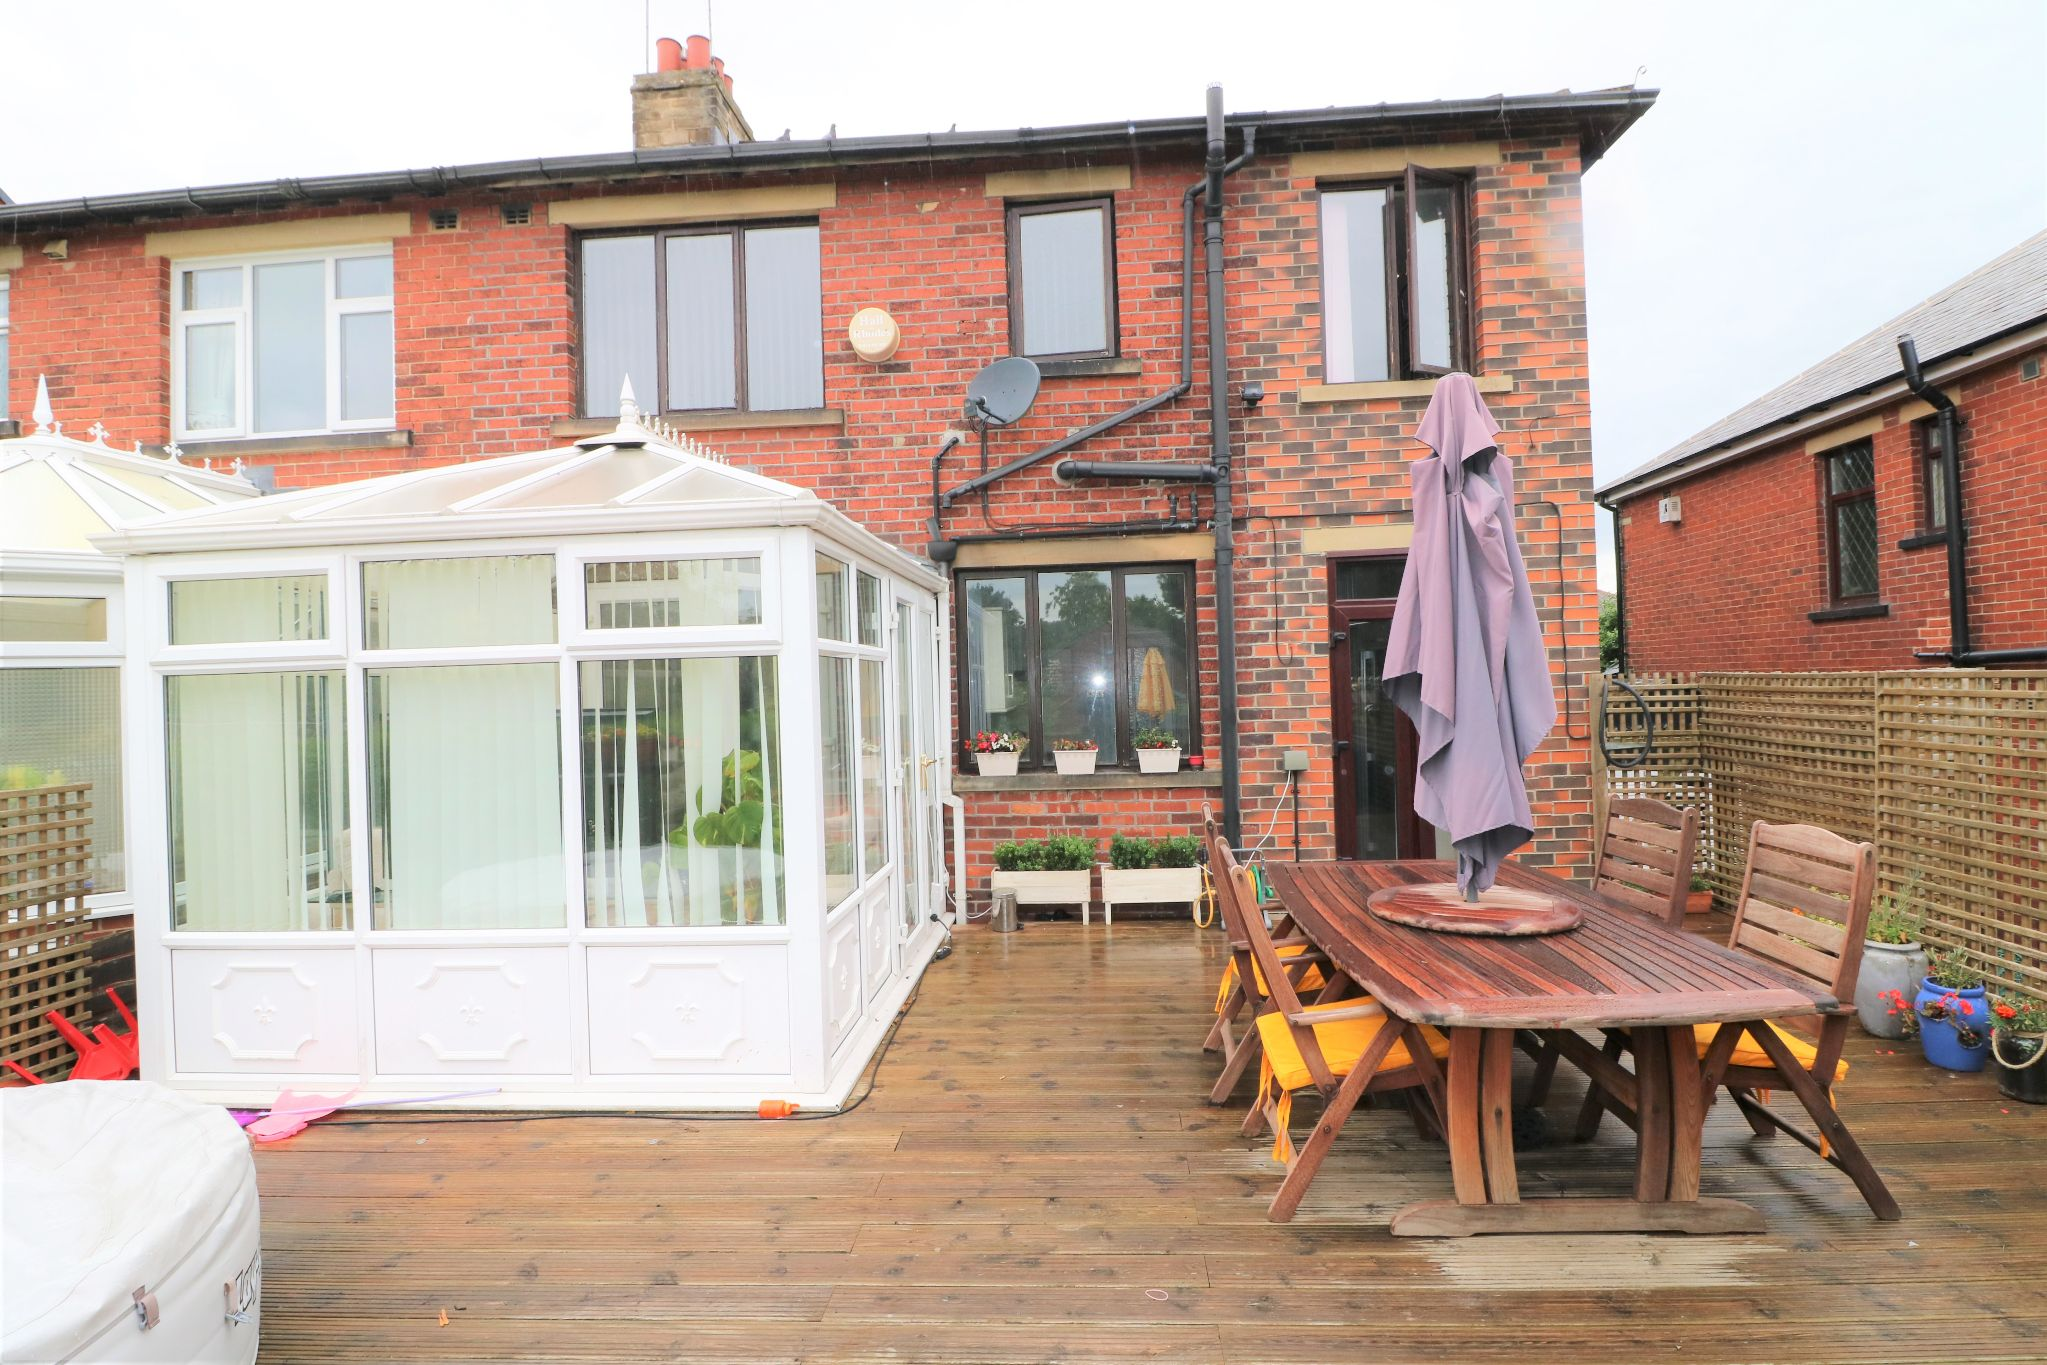 4 Bedroom Semi-detached House For Sale - Photograph 24